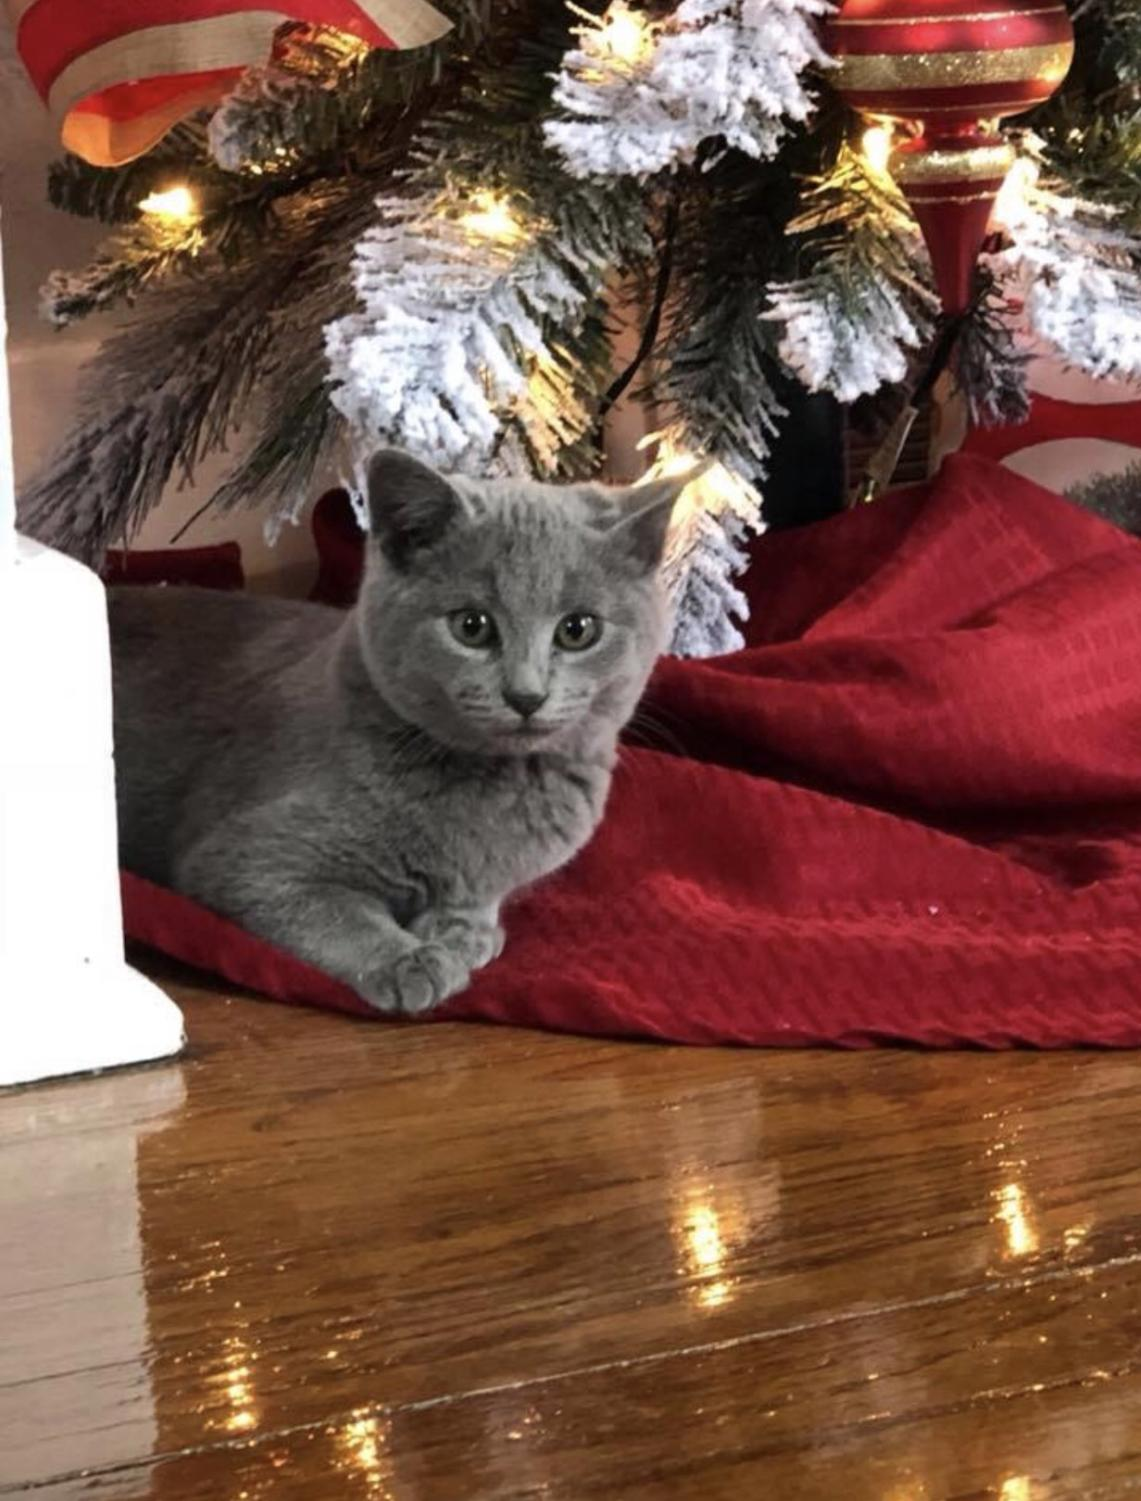 My cat, Rudy, enjoys waiting for Christmas.